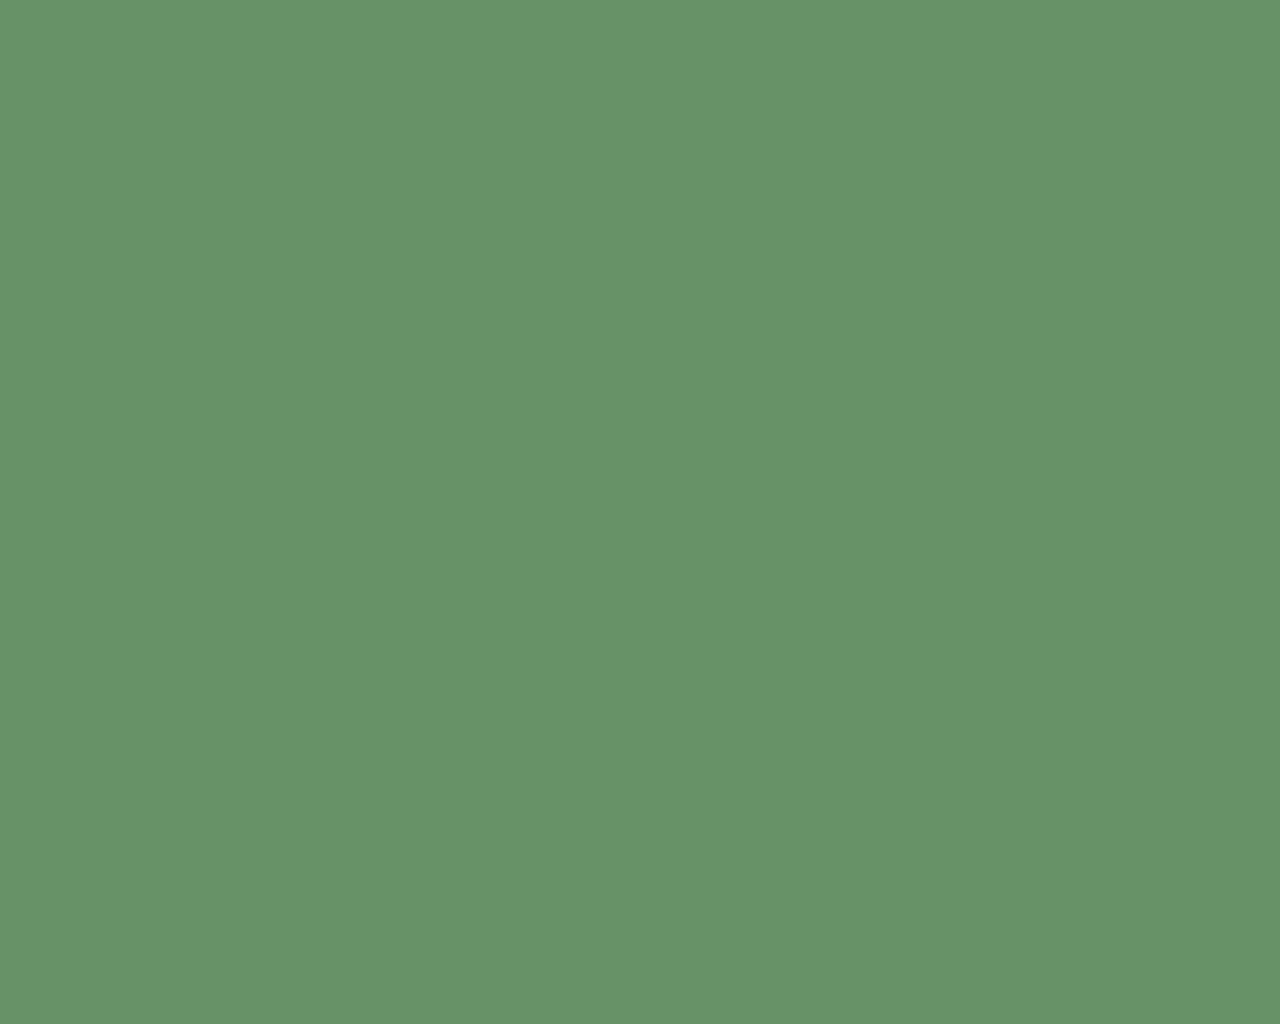 1280x1024 Russian Green Solid Color Background